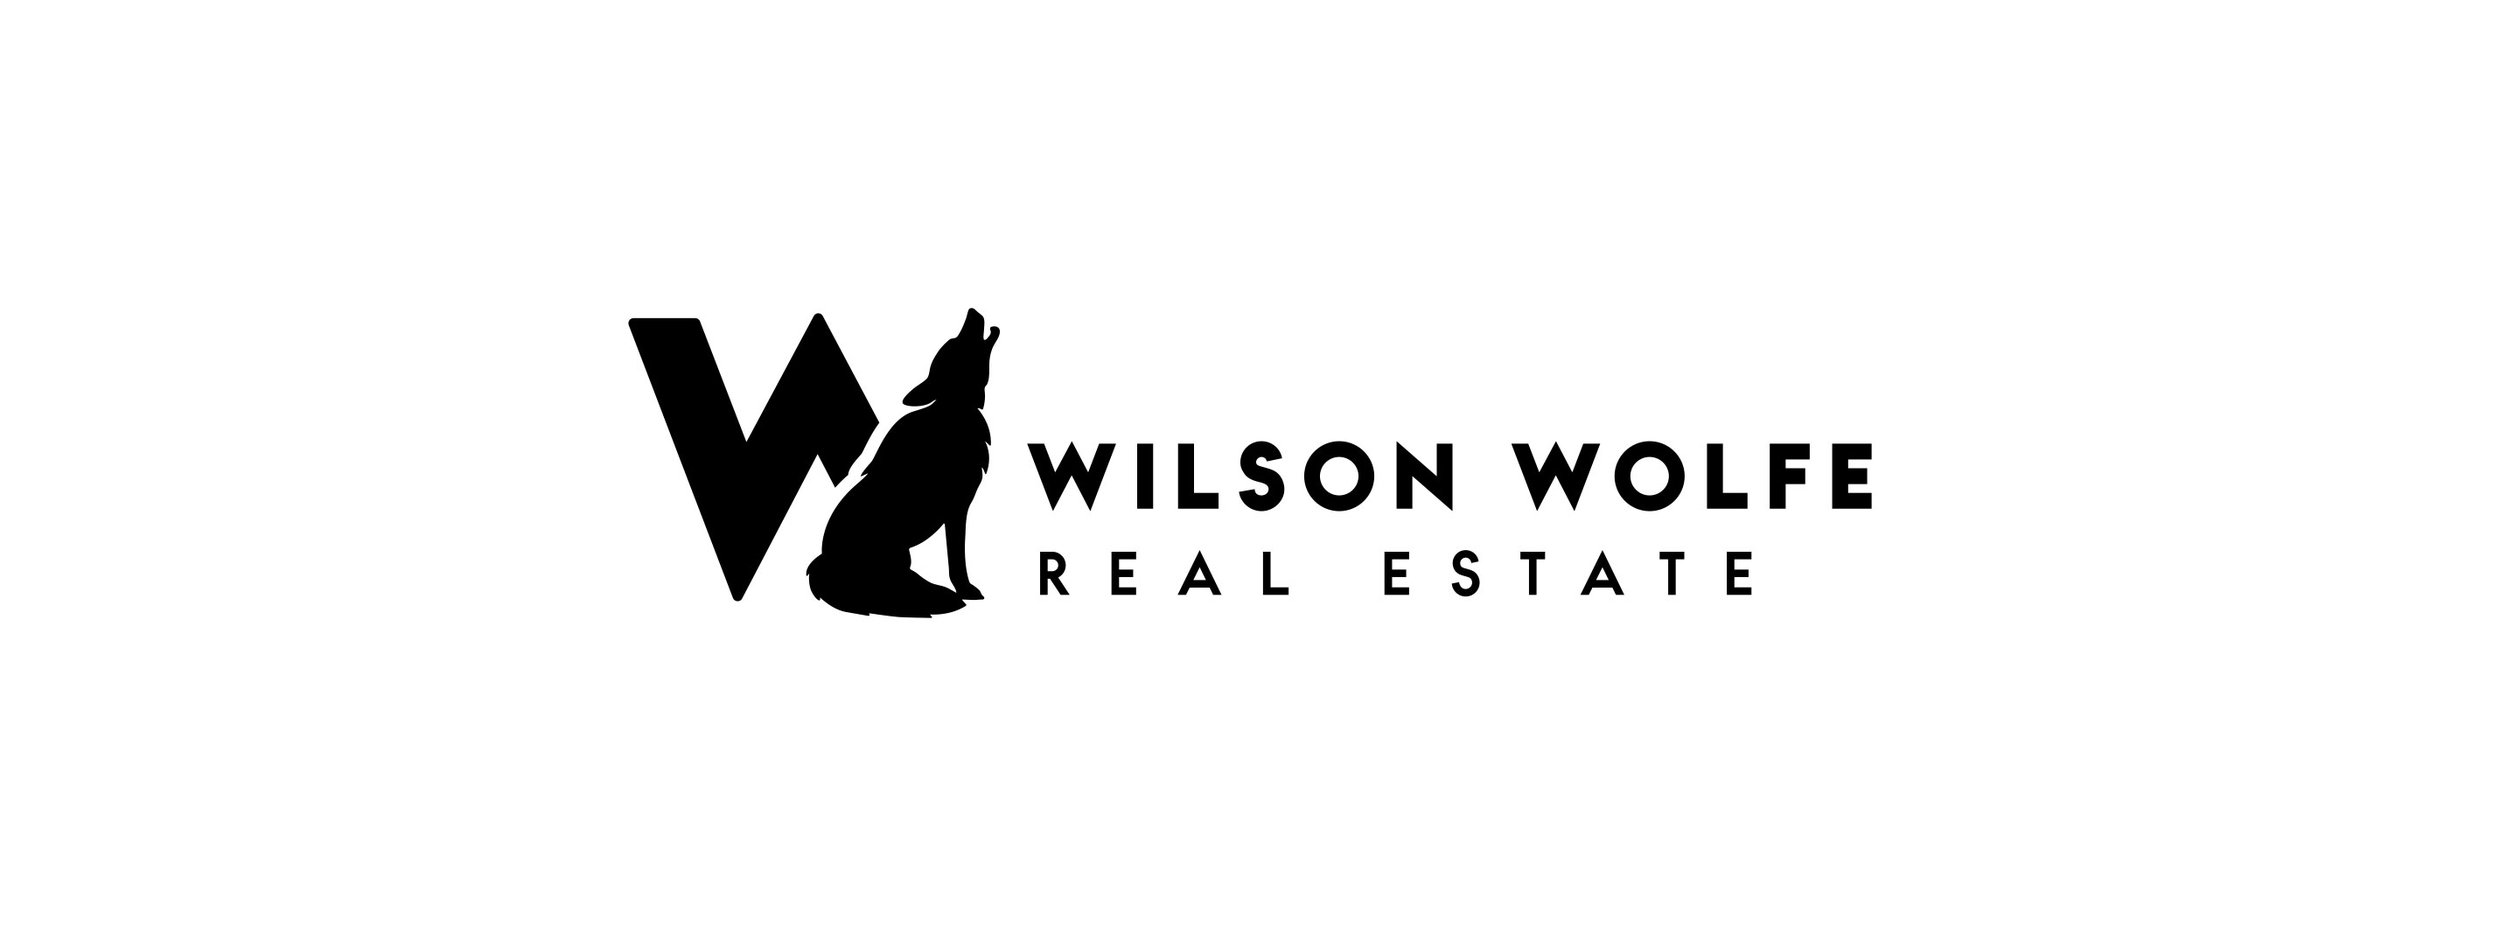 Studio-Eighty-Seven-Branding-And-Logo-Design-Wilson-Wolfe-Logo-Design-1.jpg